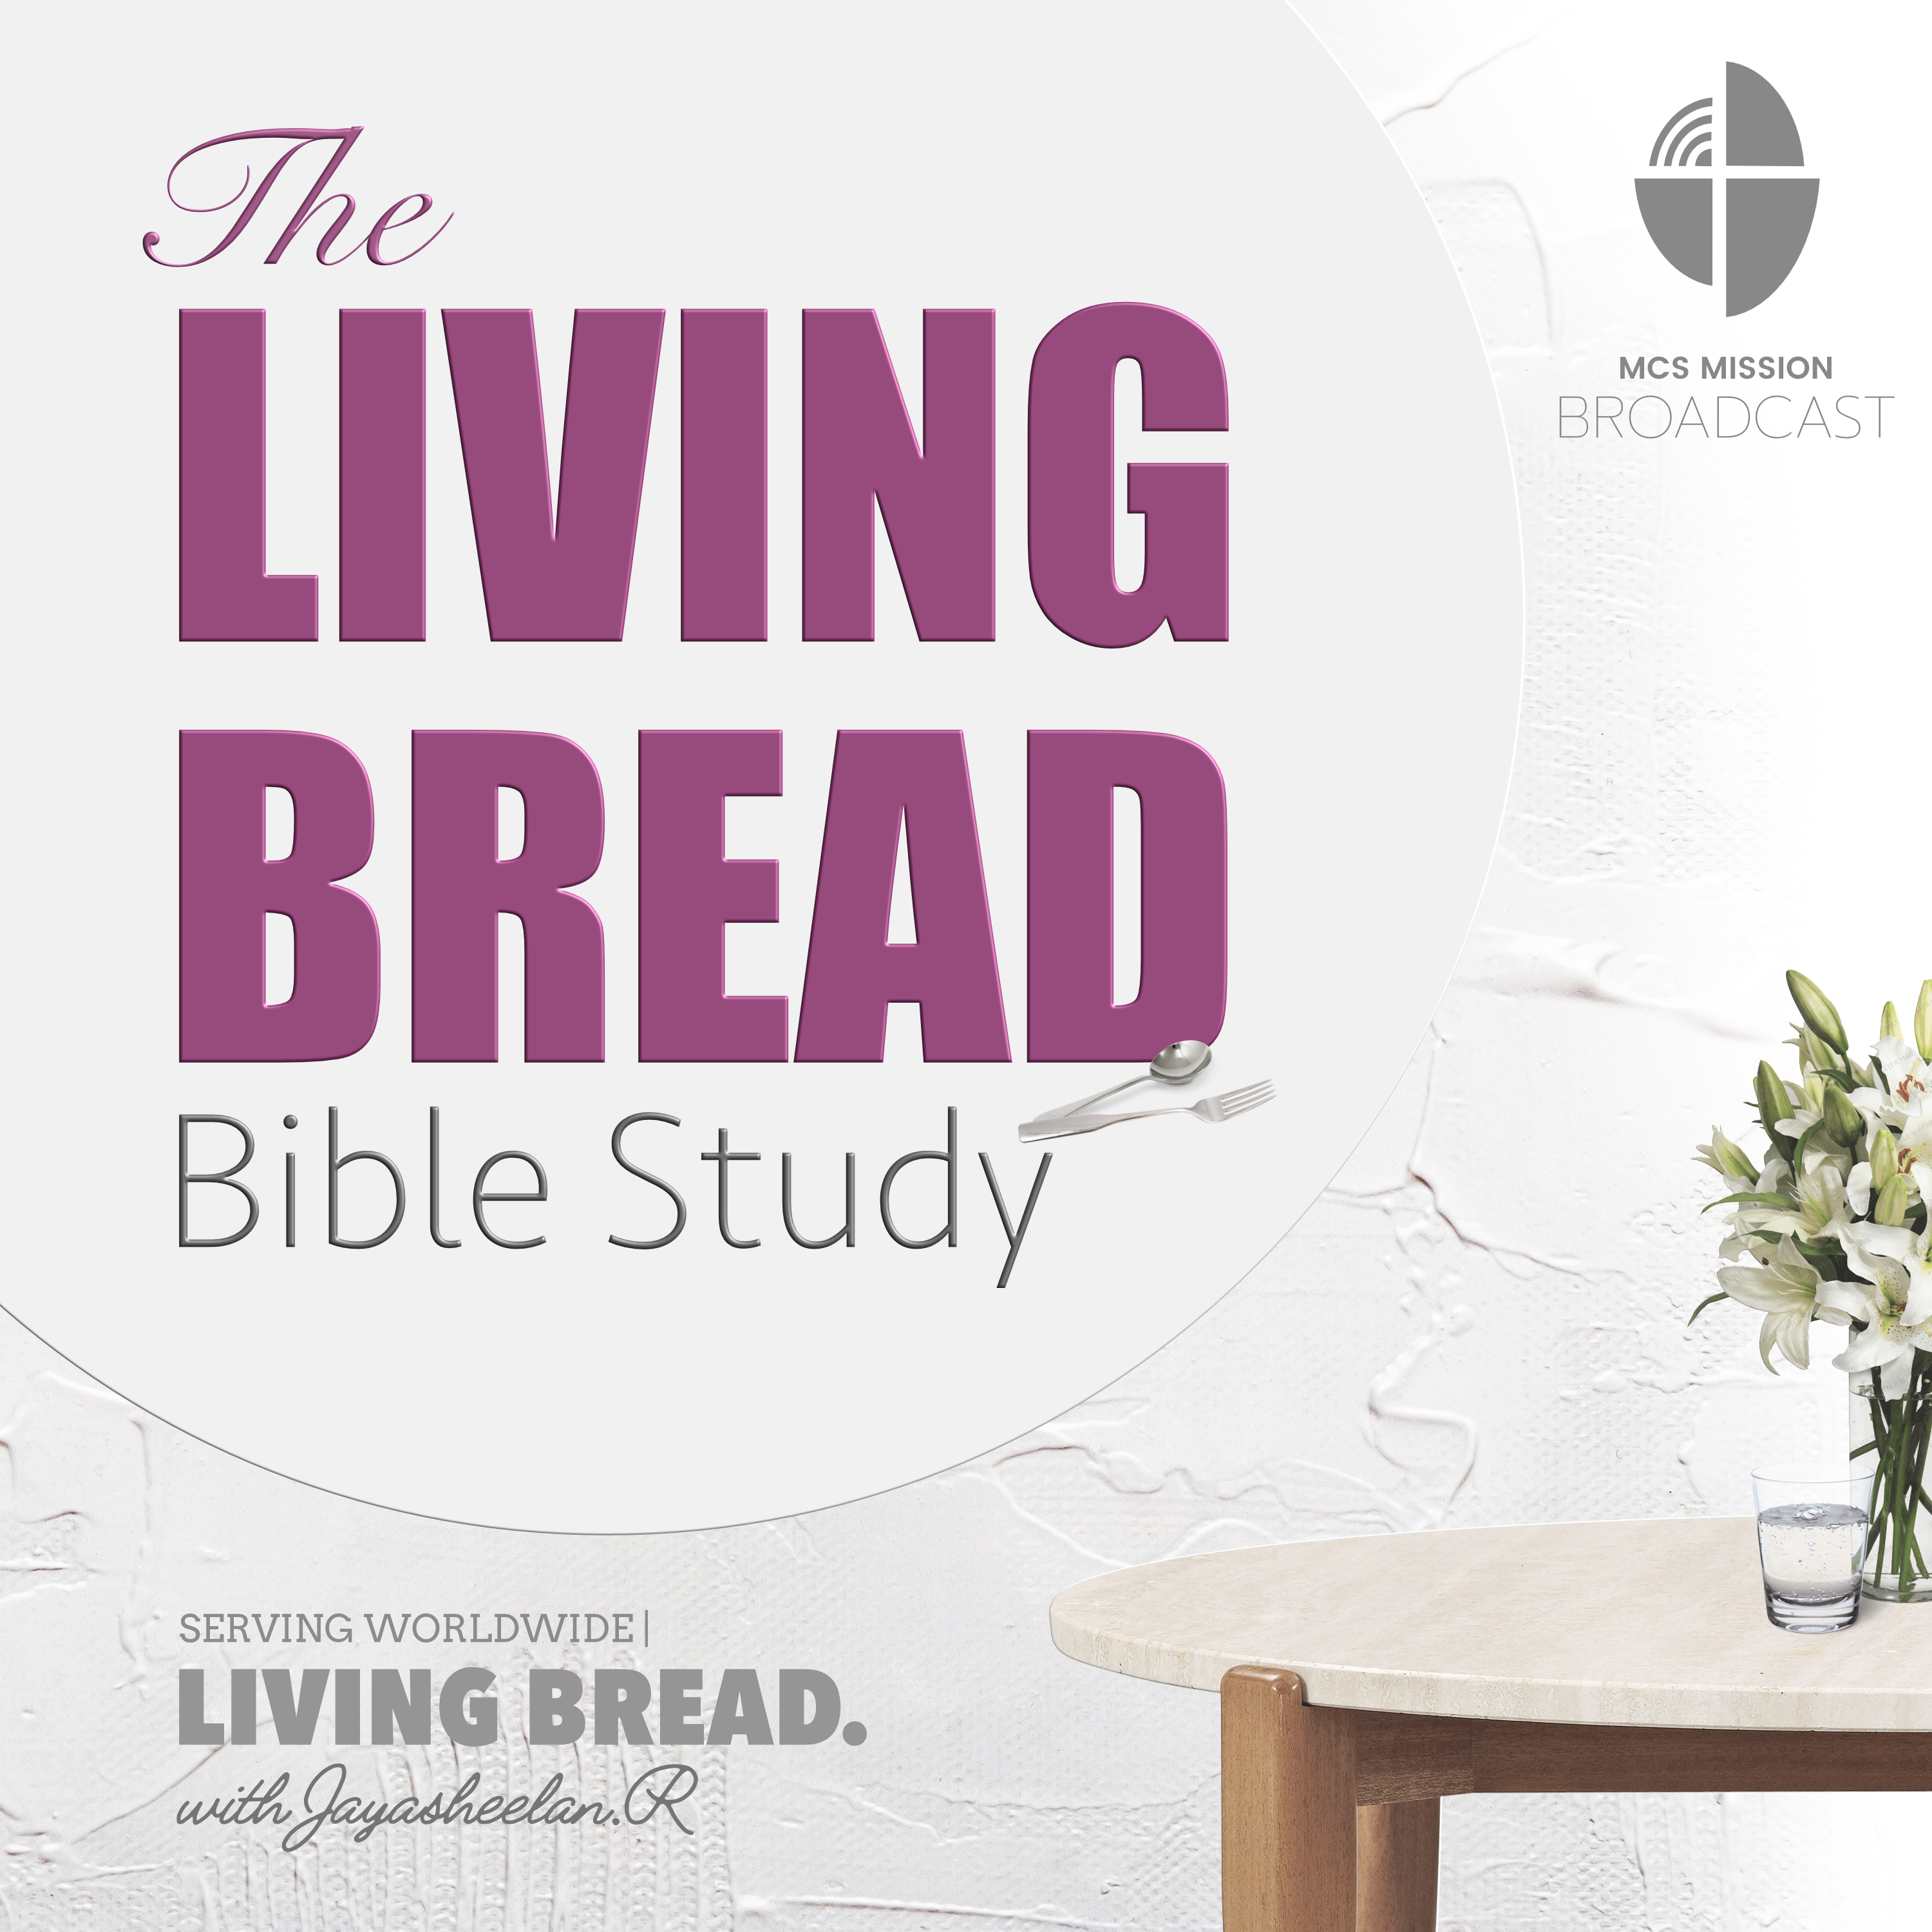 THE LIVING BREAD PODCAST